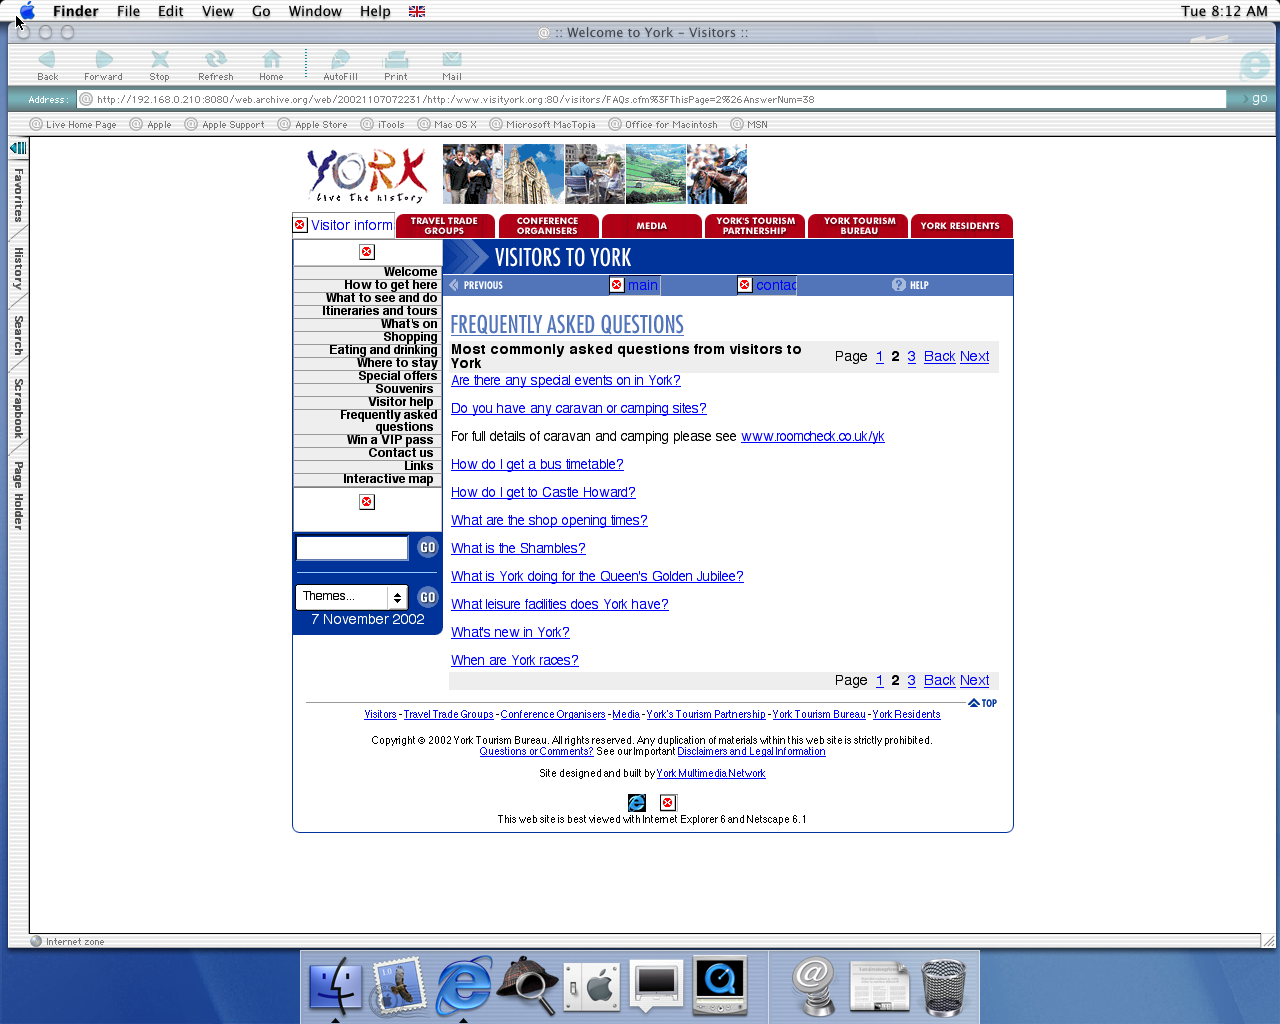 OS X 10.0 PPC with Microsoft Internet Explorer 5.1 for Mac Preview displaying a page from Visit York archived at November 07, 2002 at 07:22:31